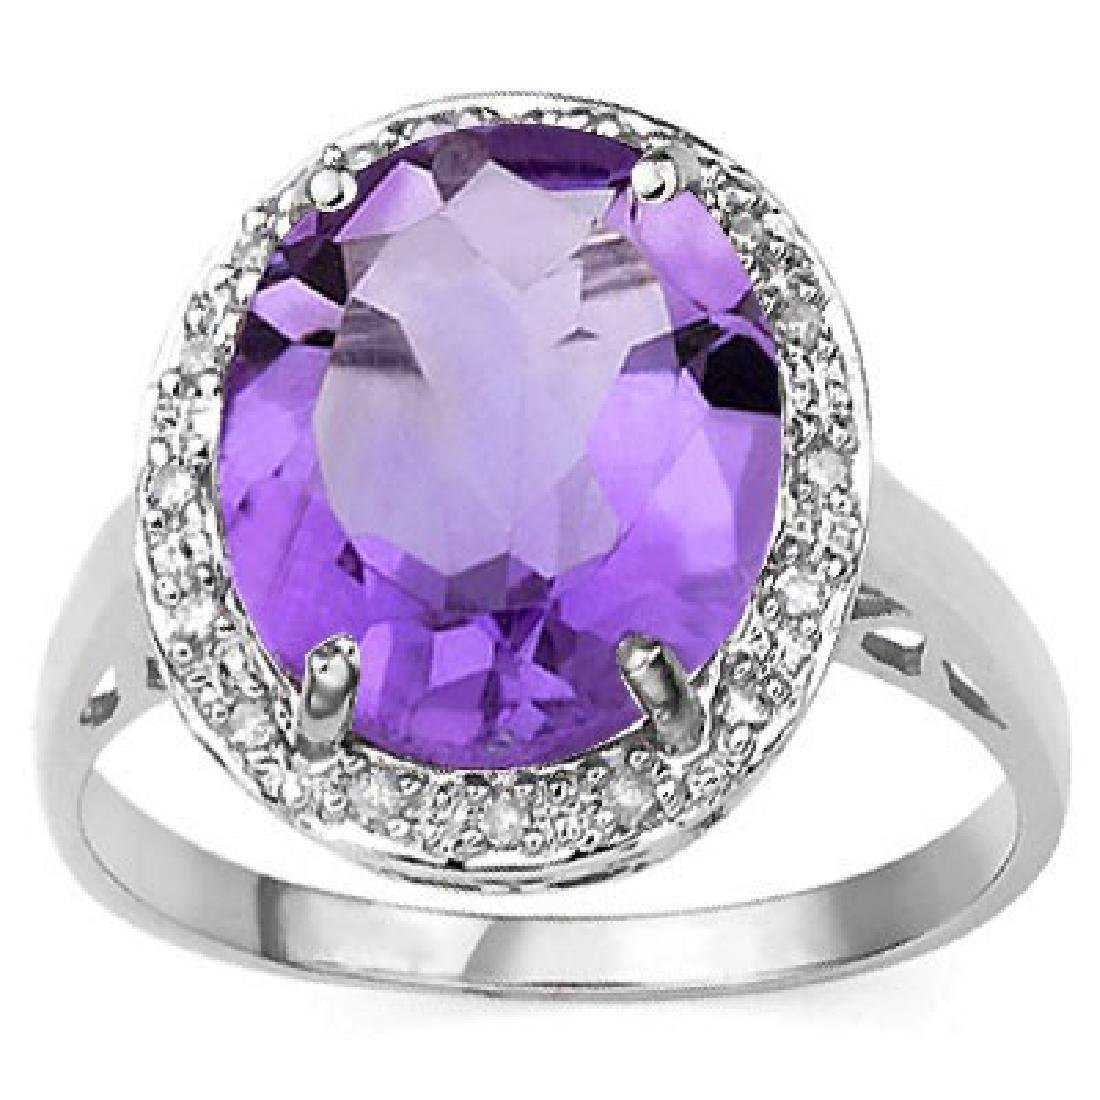 LOVELY RAISED SETTING OVAL 4CT AMETHYST RING